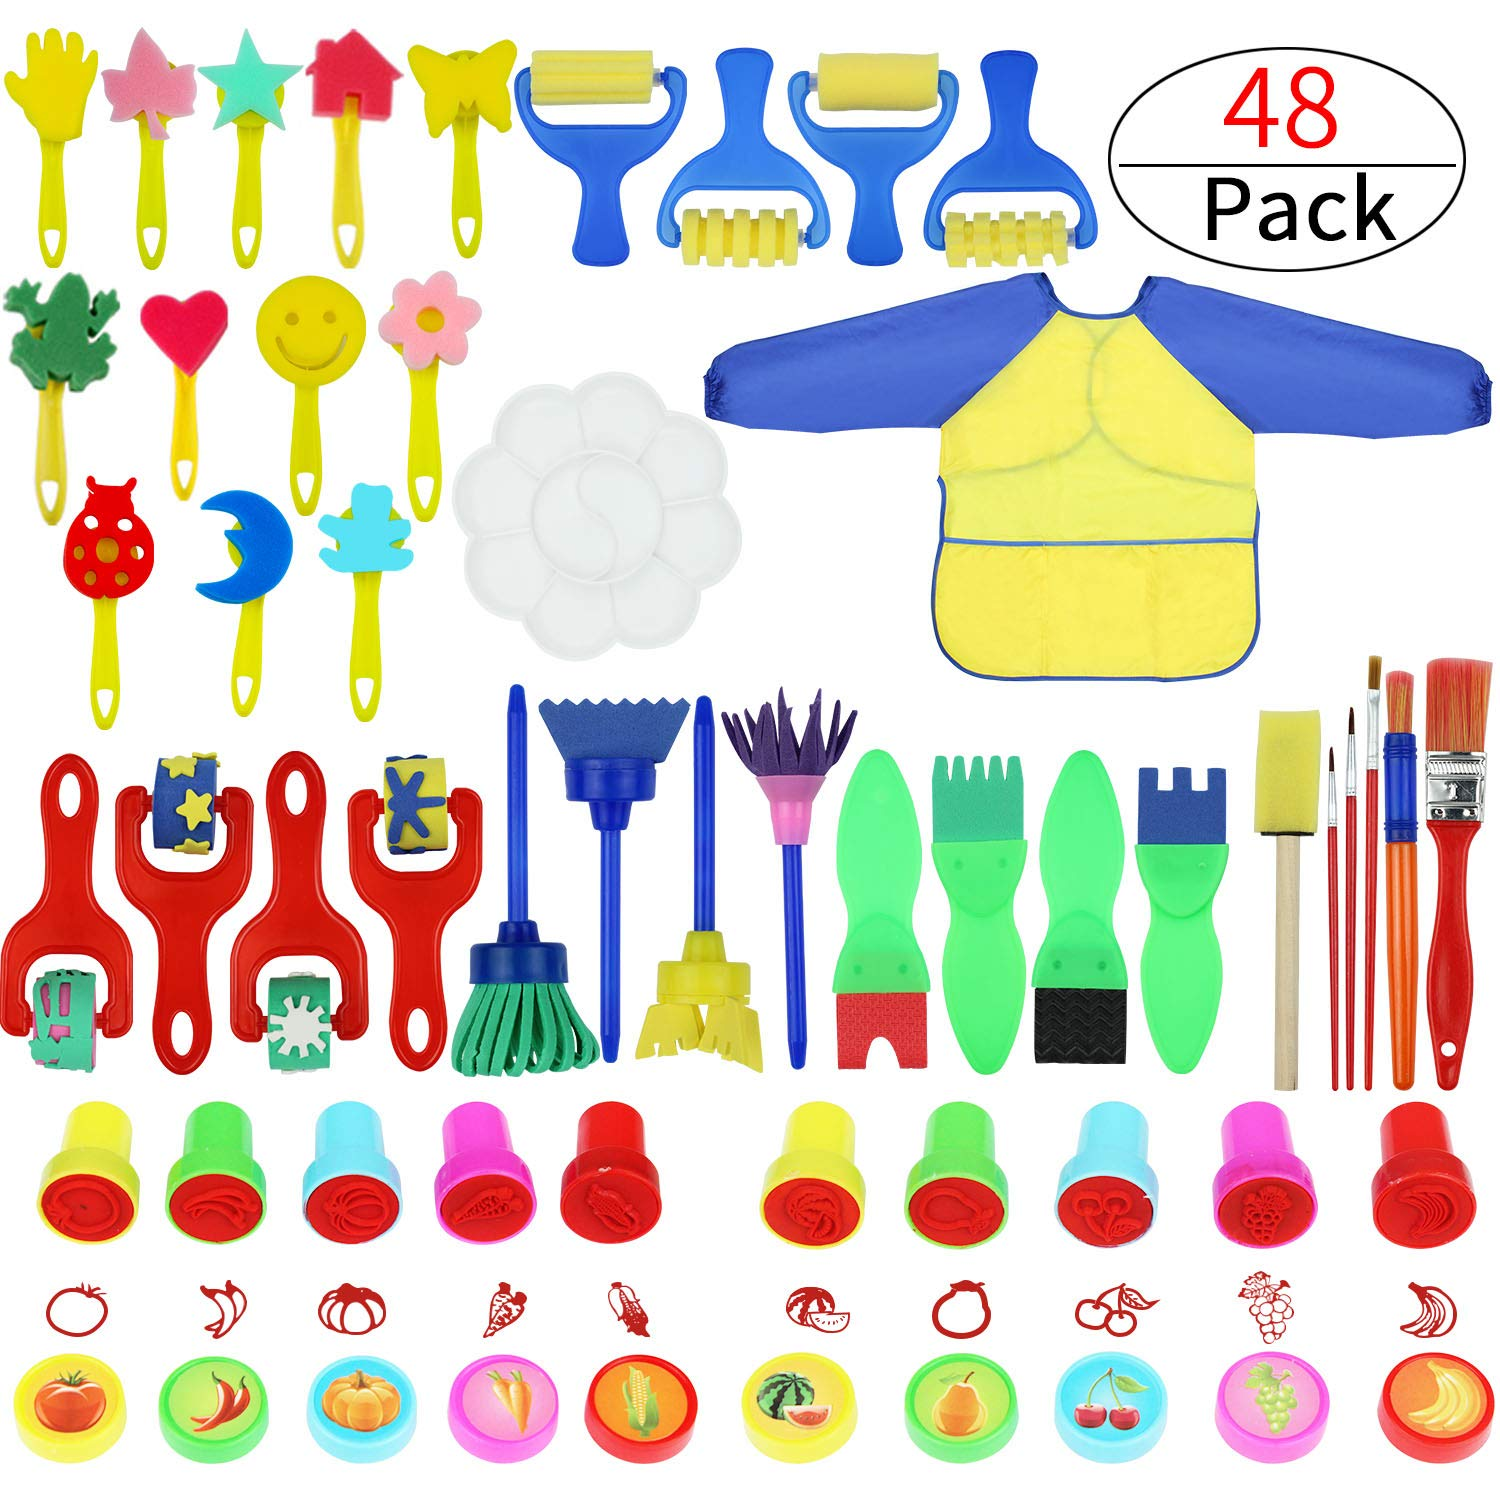 Painting Kits for Kids,Early Learning Kids Paint Set,Paint Sponges for Kids,77PCS Mini Flower Sponge Paint Brushes and Toys. Assorted Painting Drawing Tools in a Clear Durable Storage Pouch (48PCS) by Zoneyee